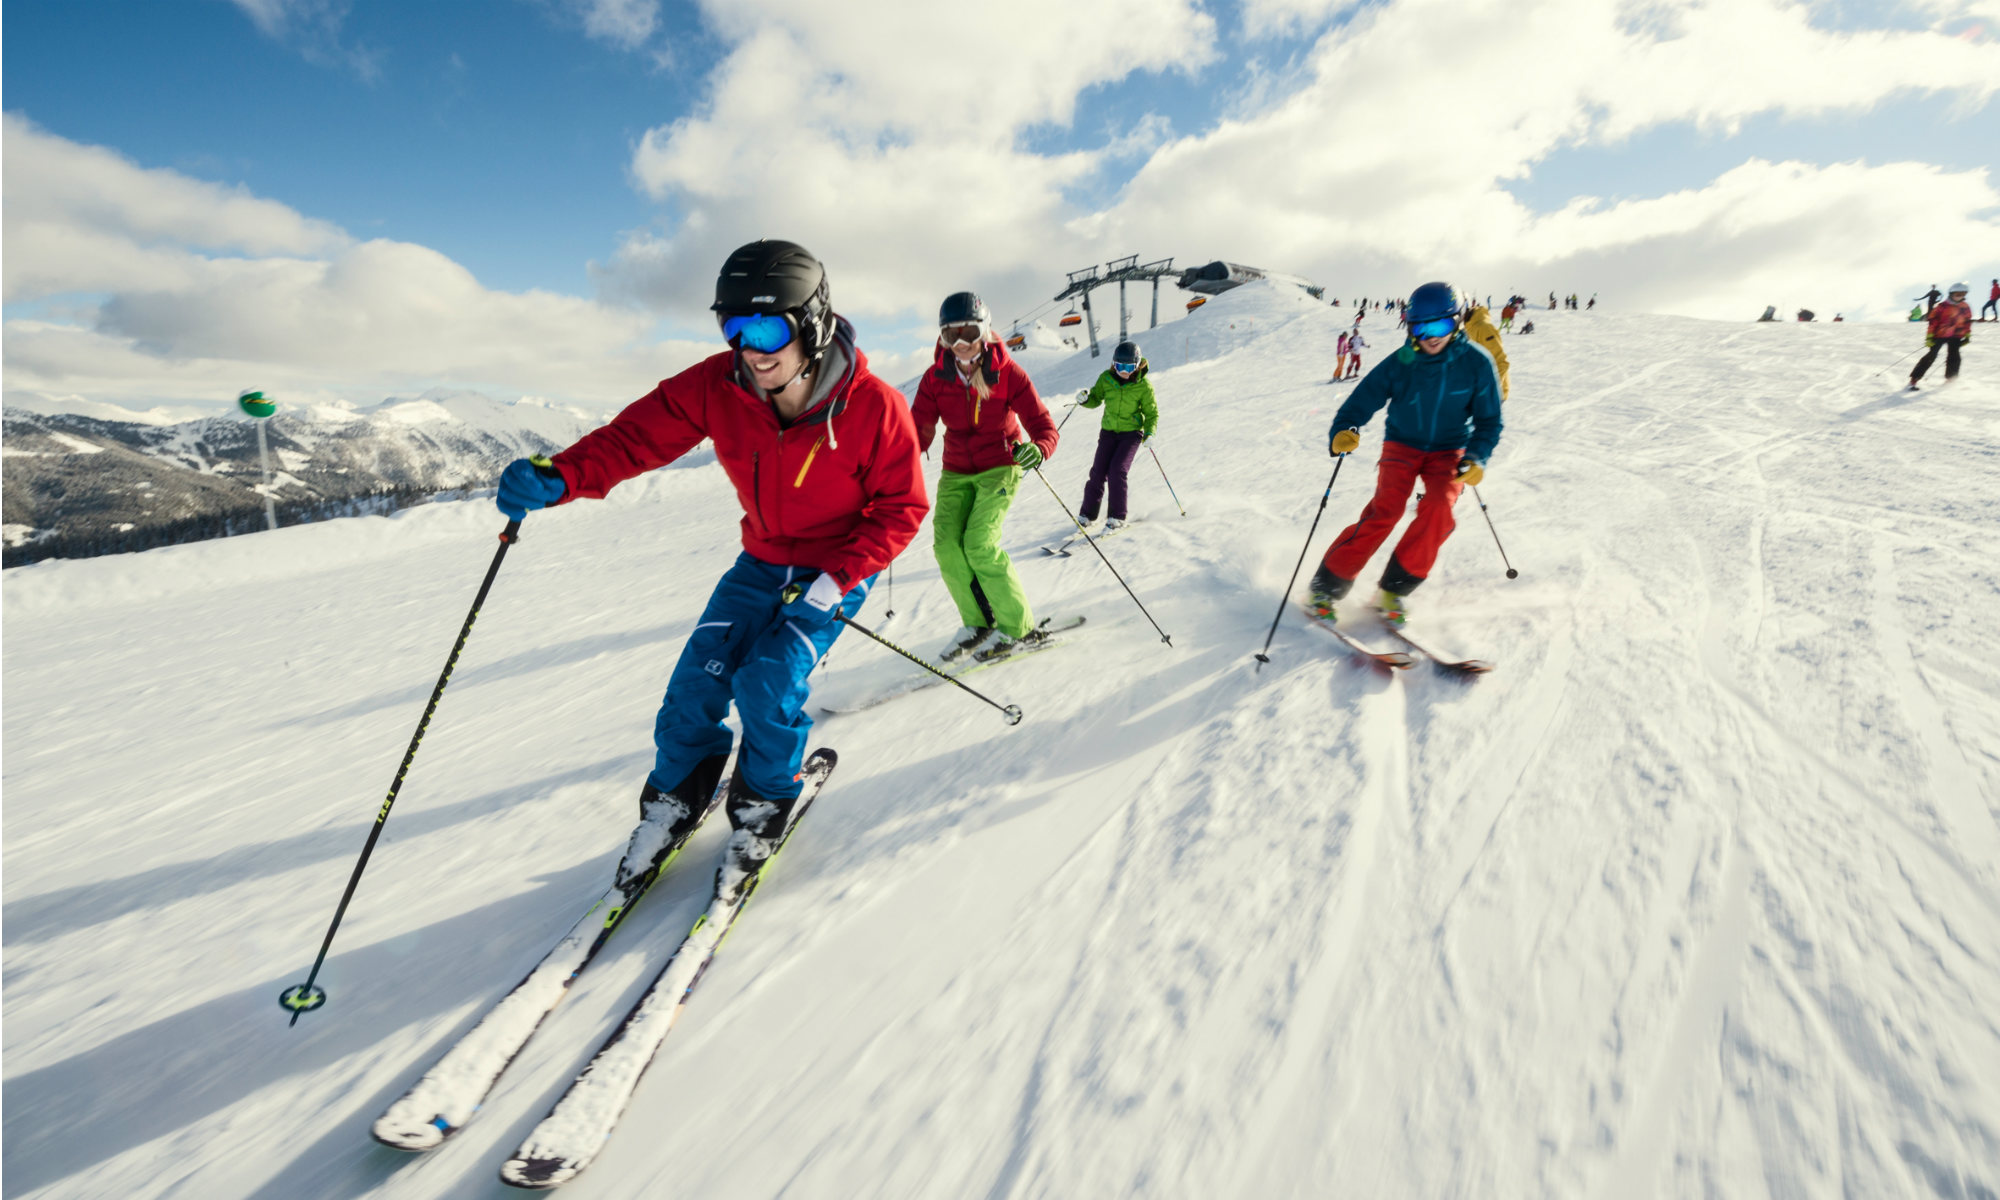 A group of skiers gliding down the slopes in Flachau.